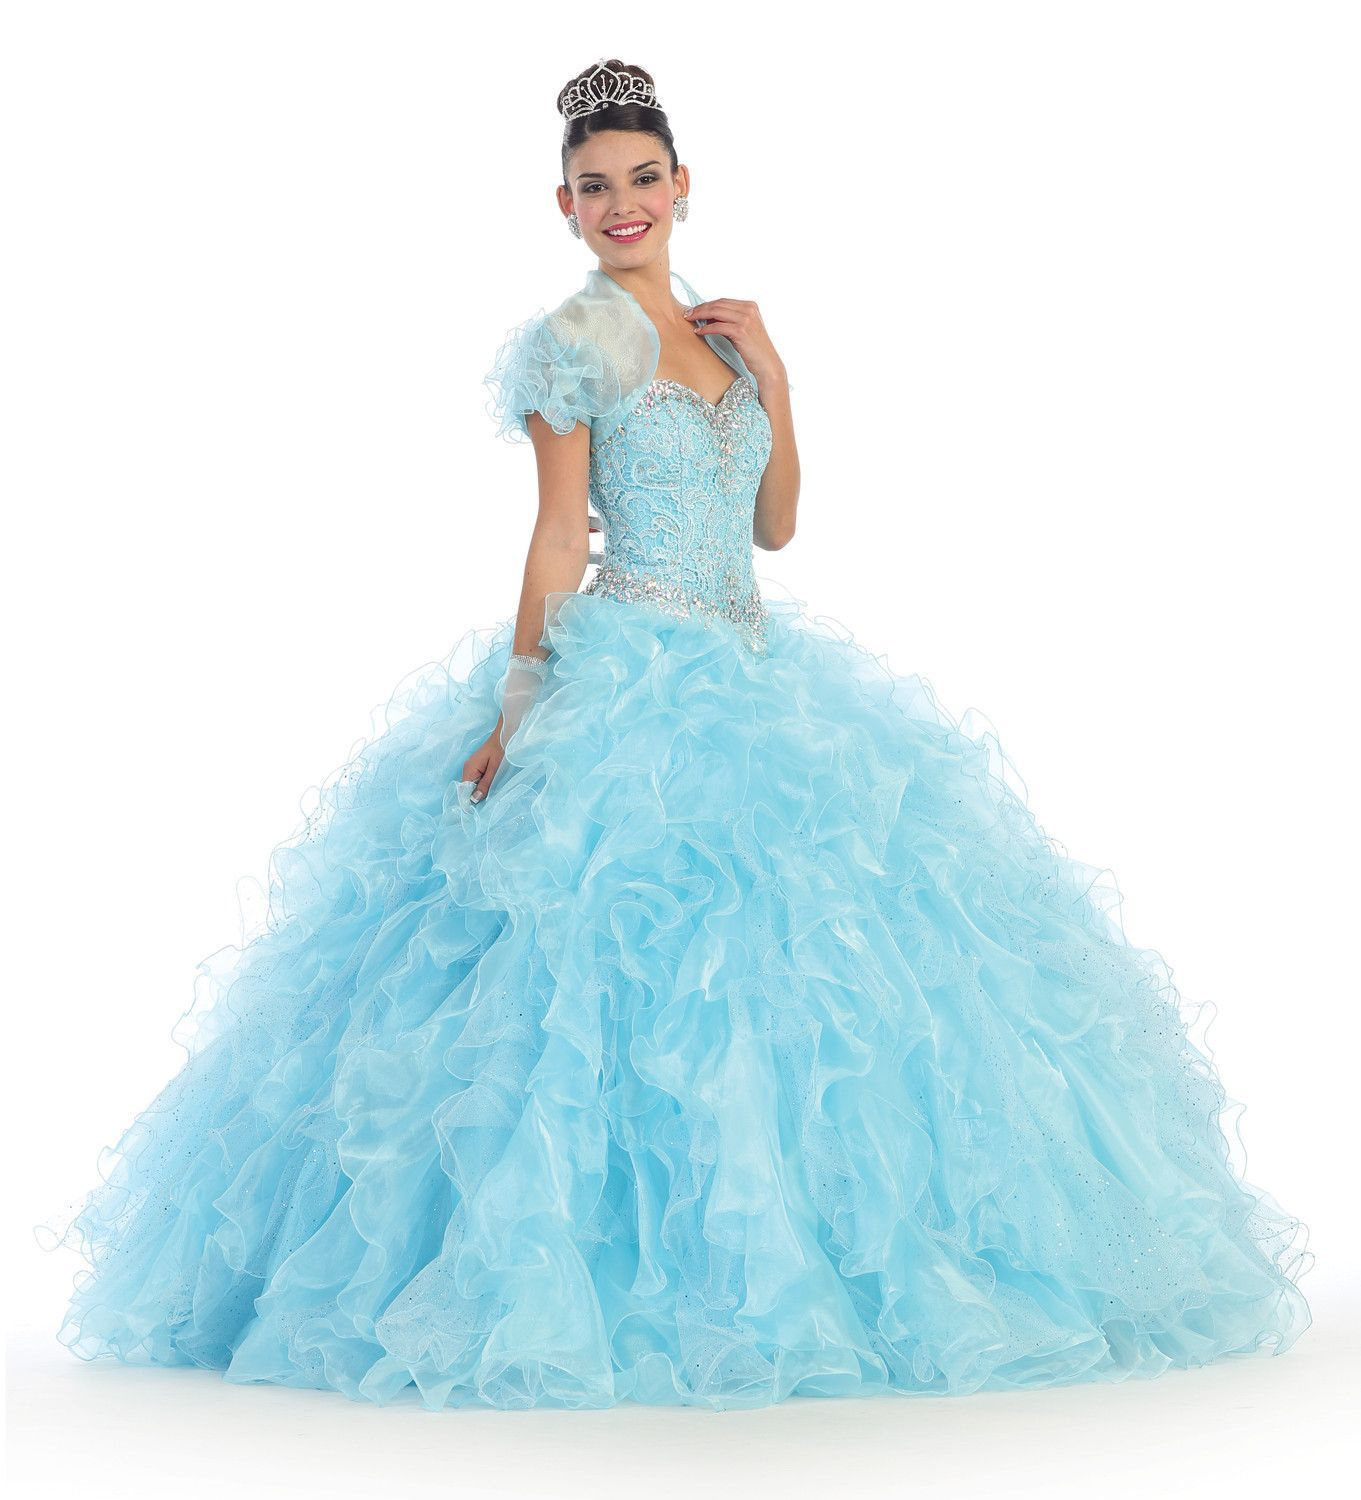 Quinceanera formal prom dress homecoming long gown boleros bodice